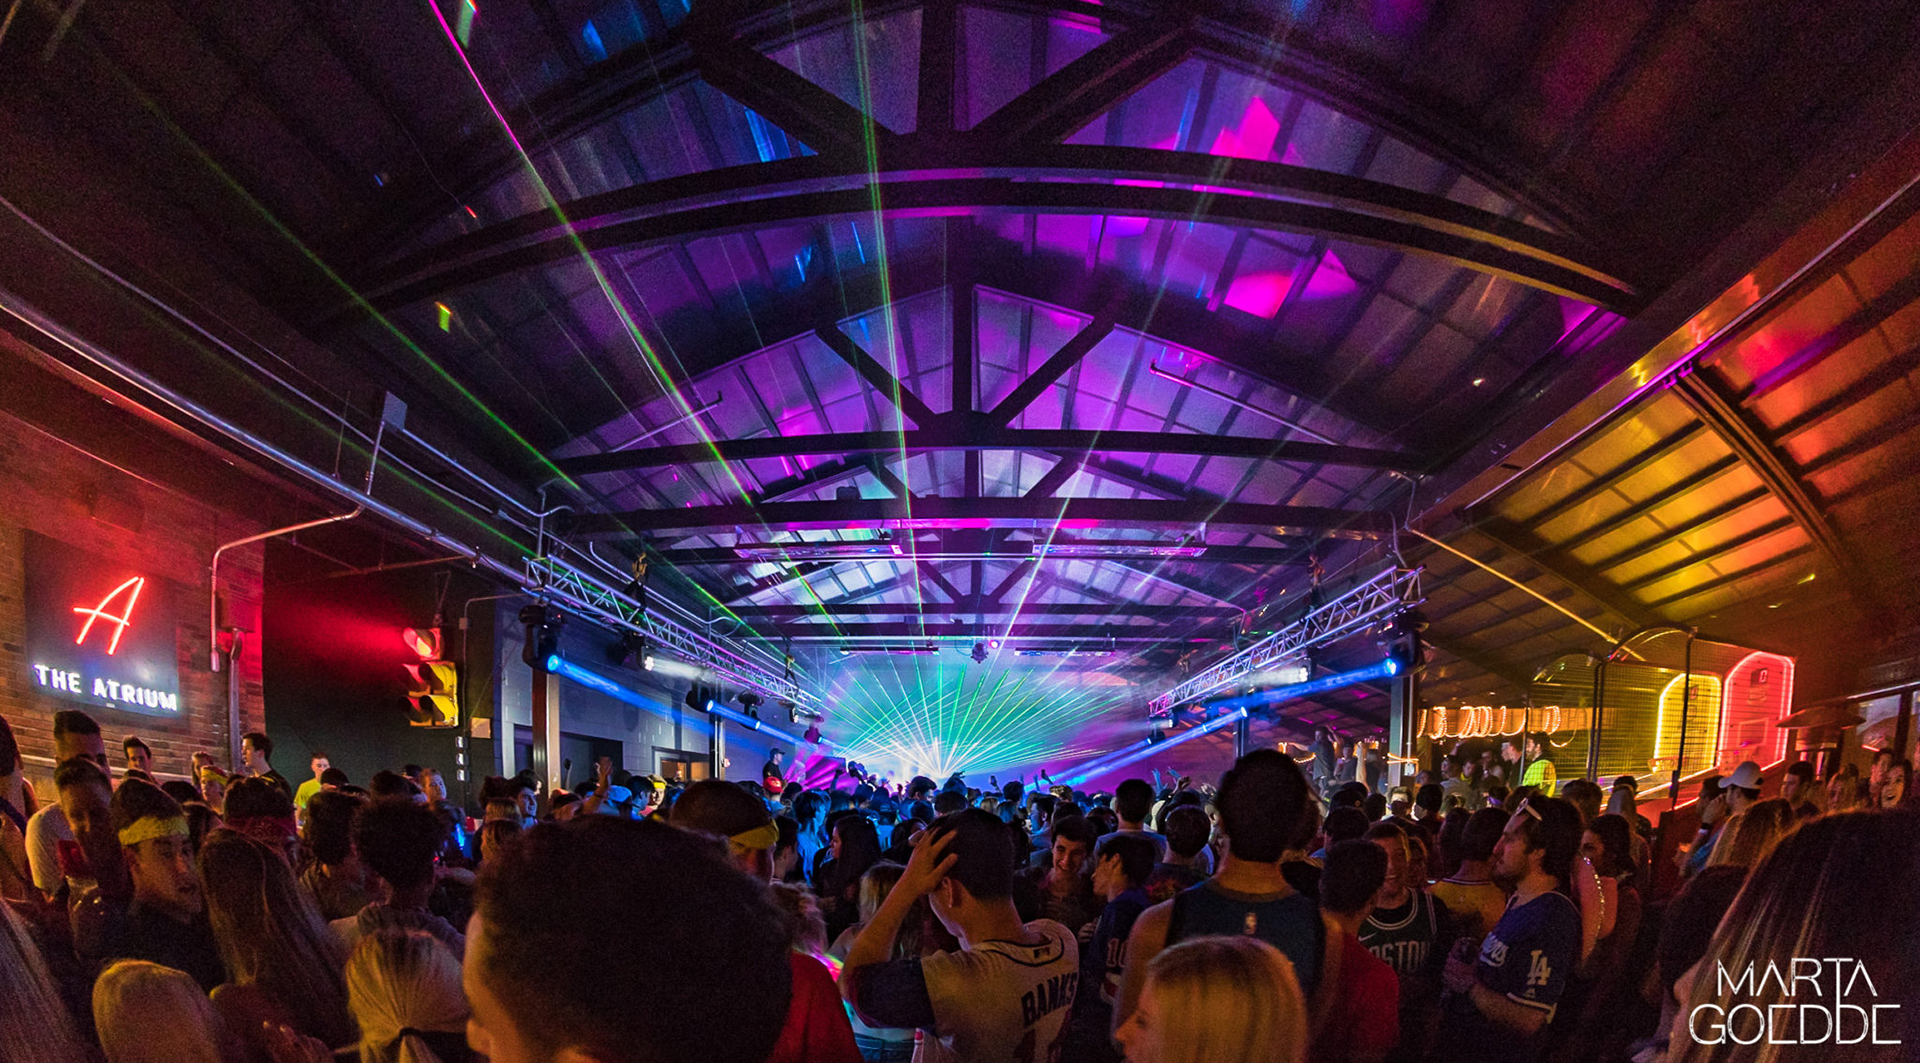 Retractable roof over event area